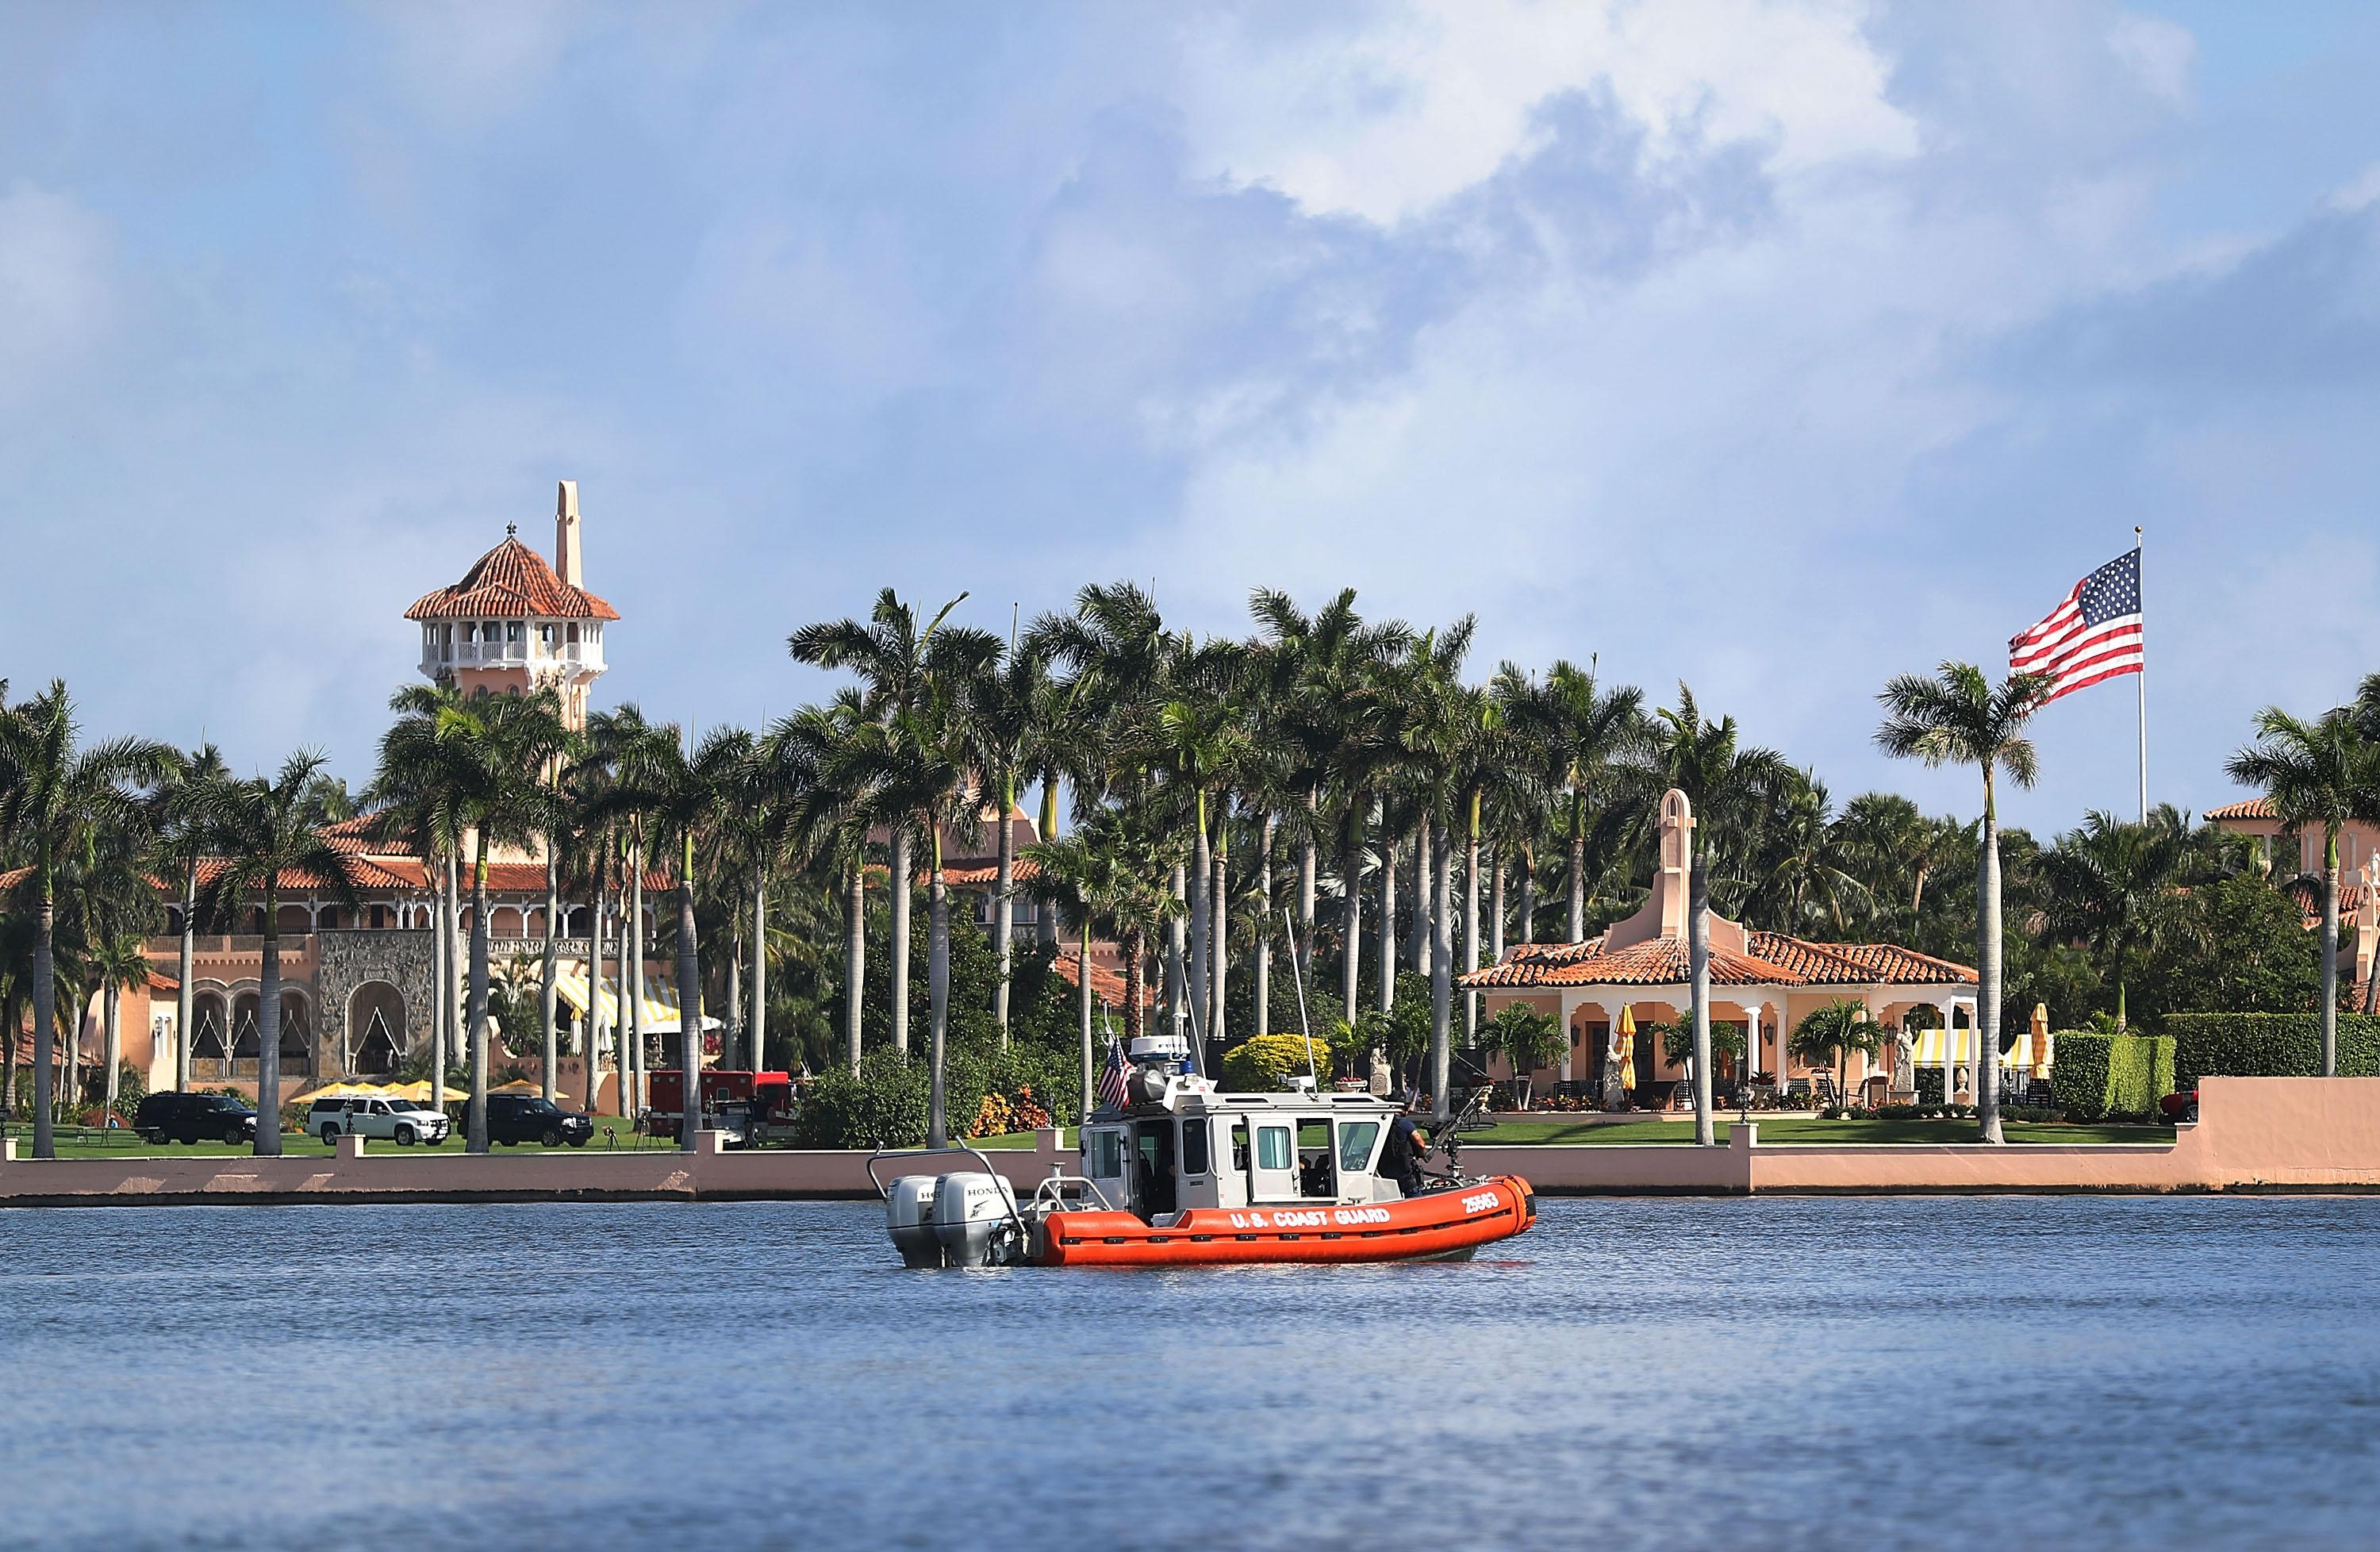 A U.S. Coast Guard boat passes the Mar-a-Lago resort